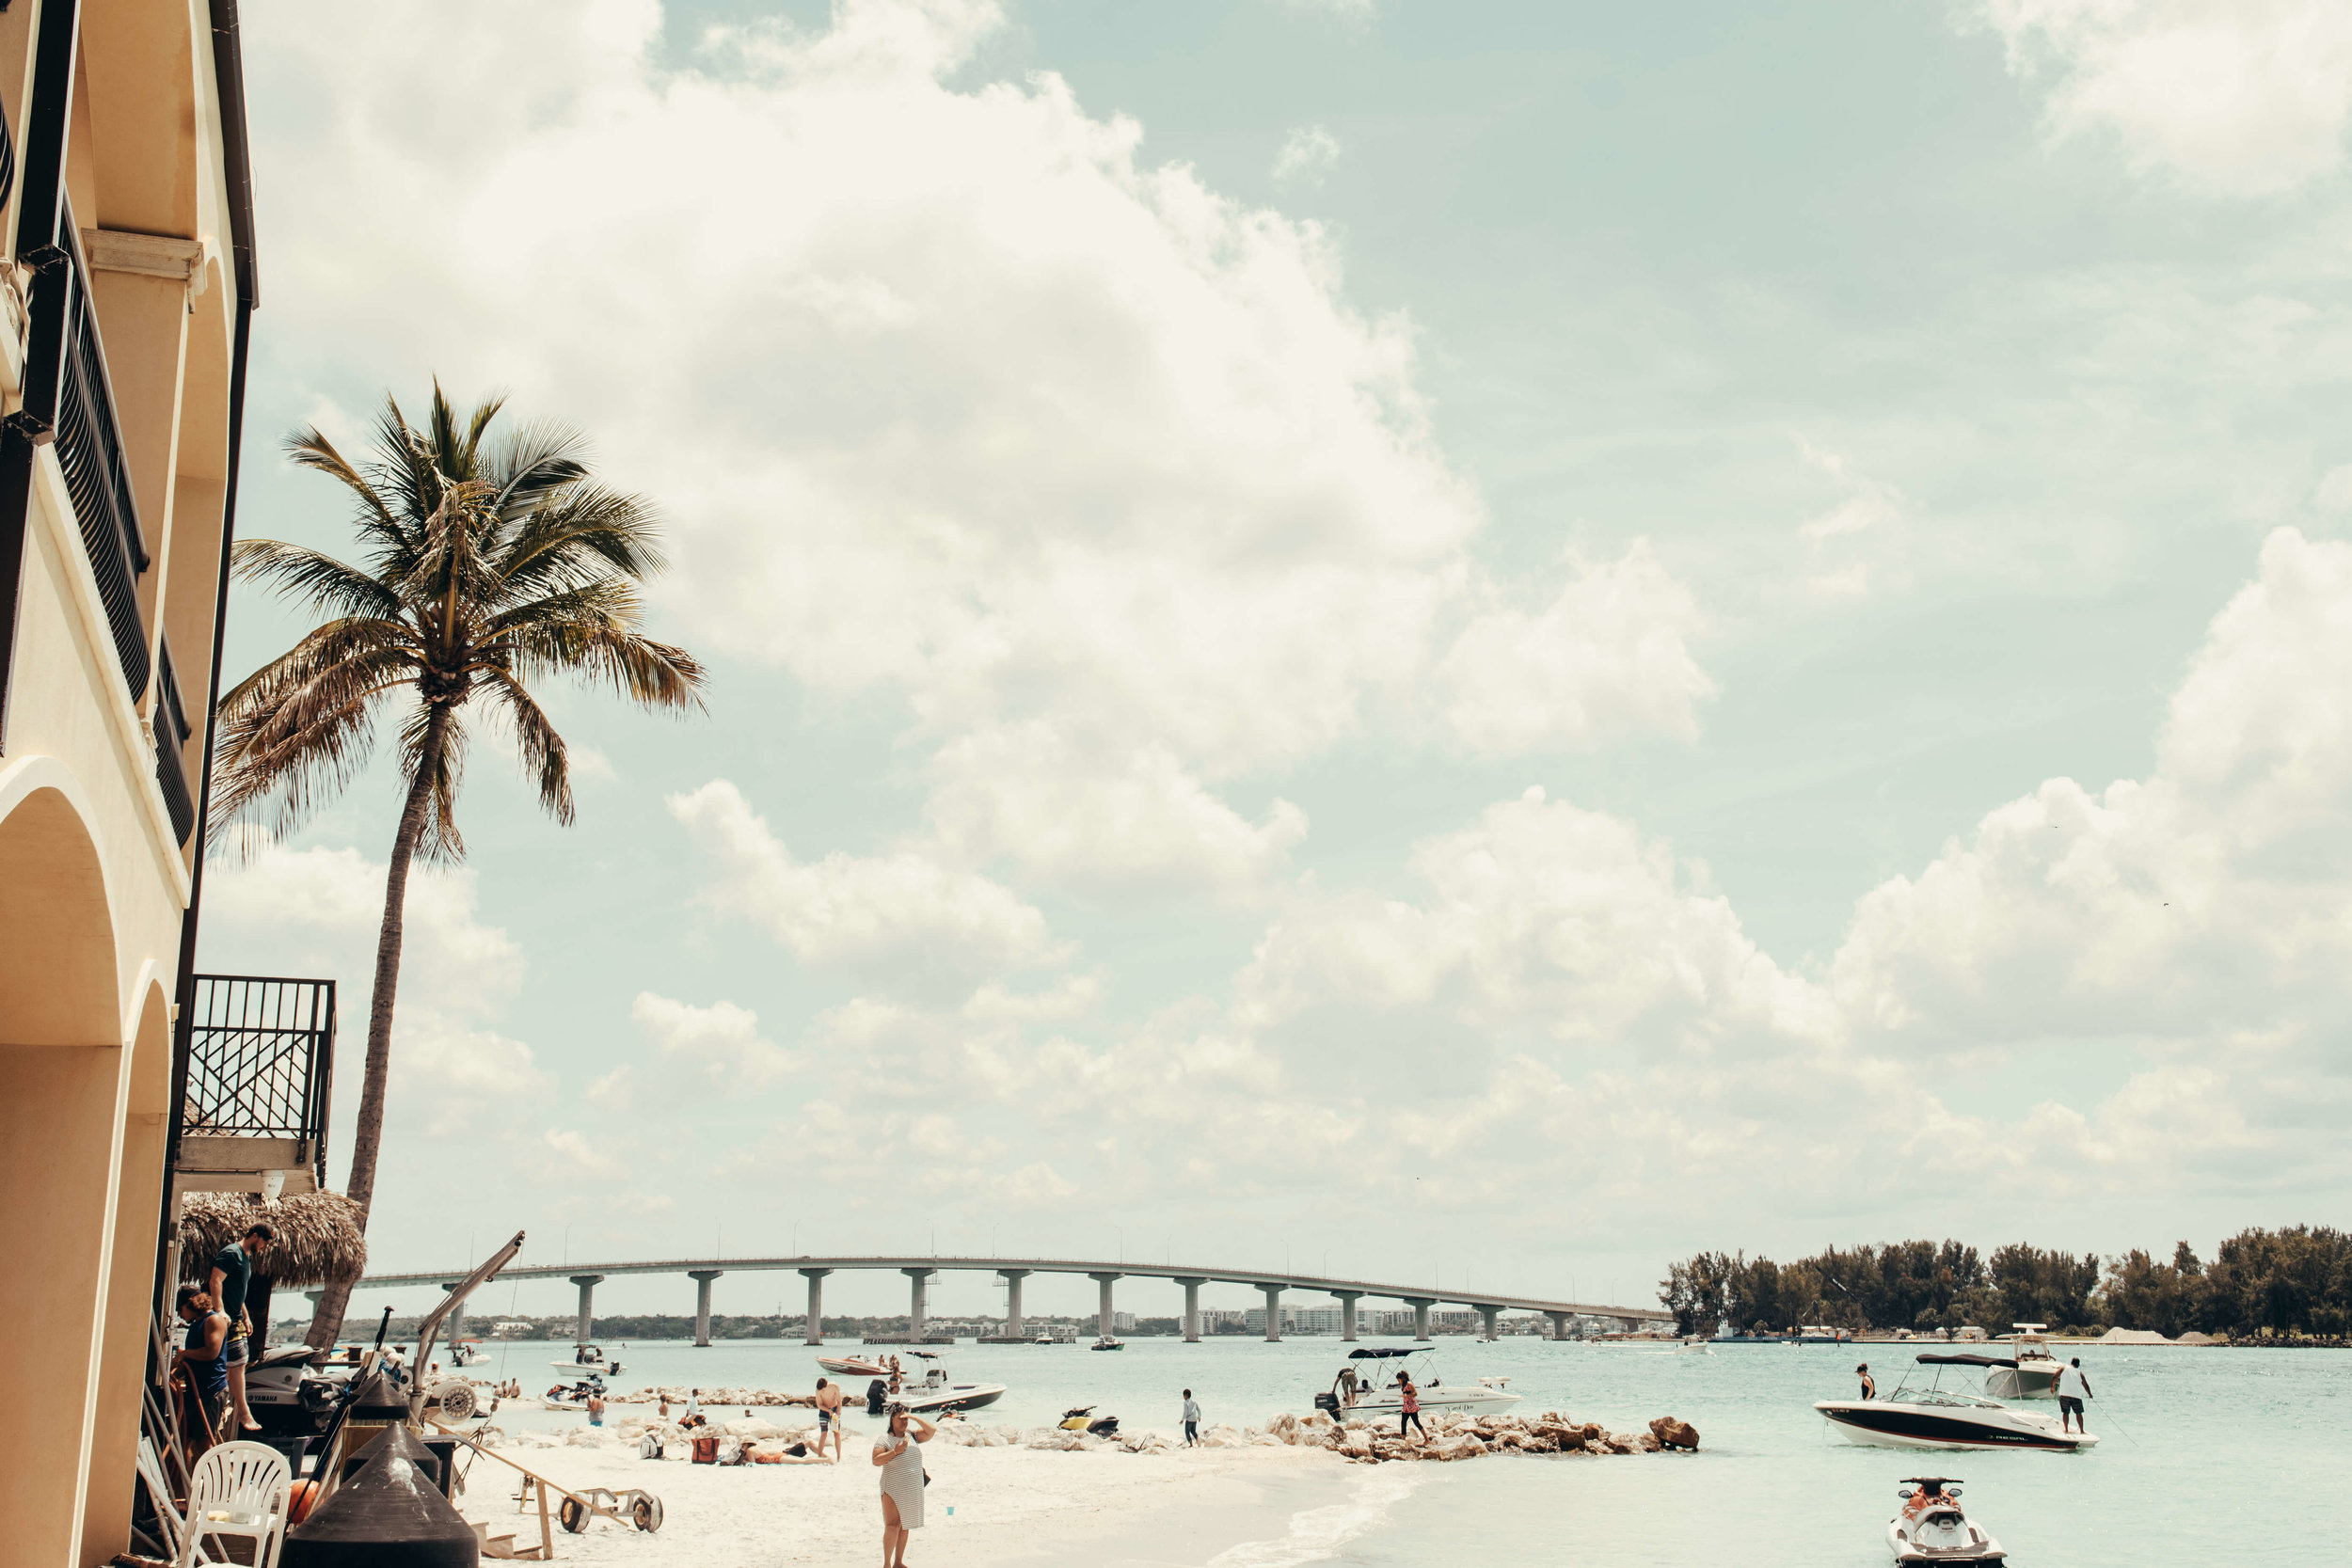 clearwater beach, Evie Johnstone photography